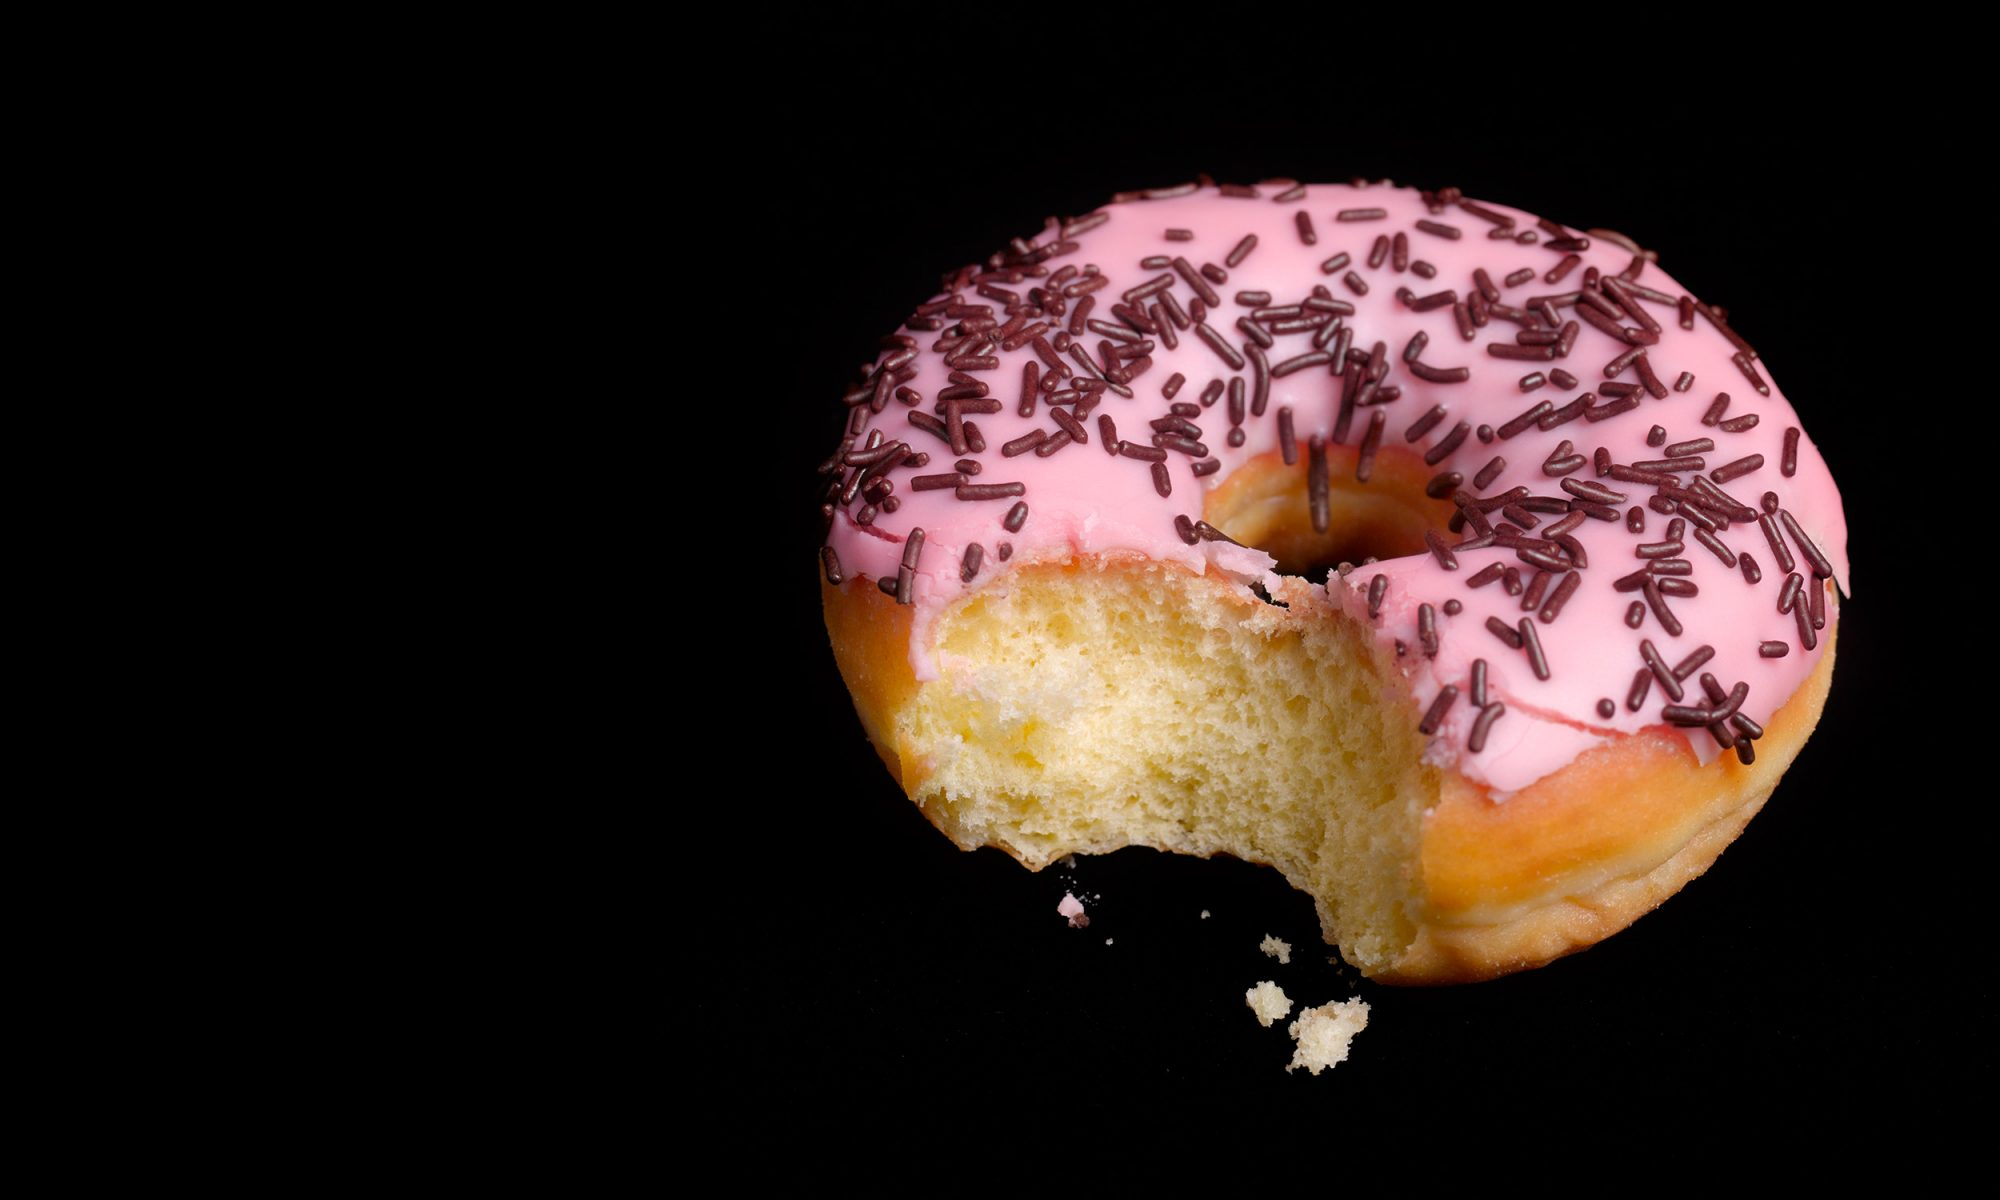 EC: This Pastry Shop Launched a Doughnut Into Outer Space